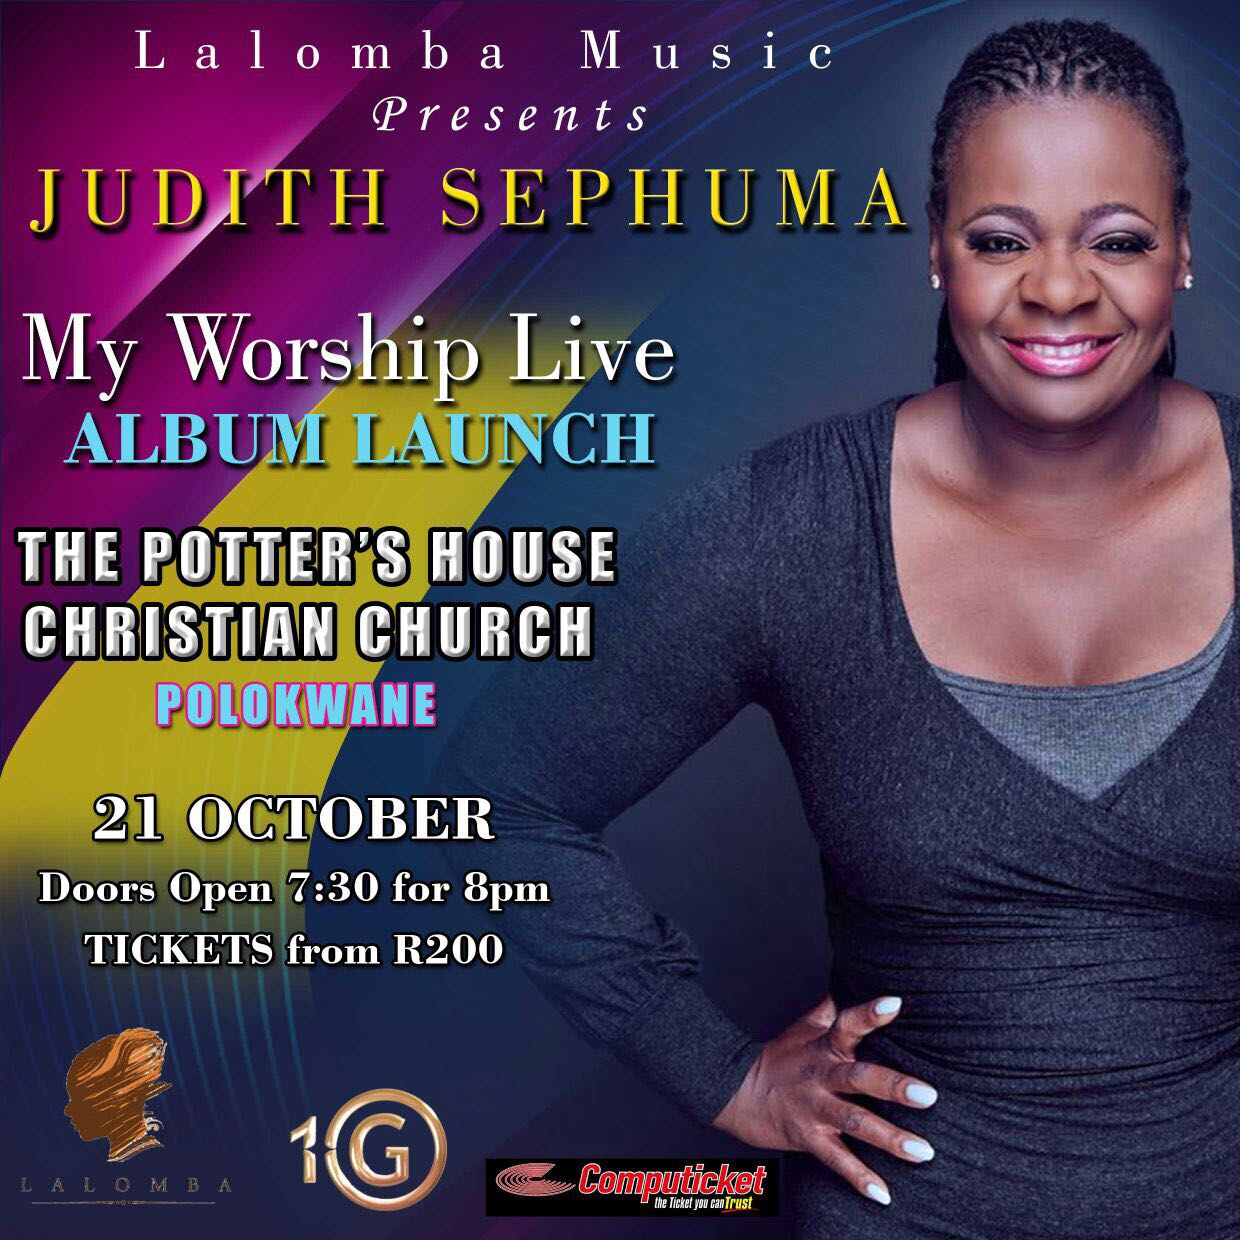 judith-sephuma-concert-gospel-polokwane-my-worship-live-album-tickets-21-october-2017-.jpg